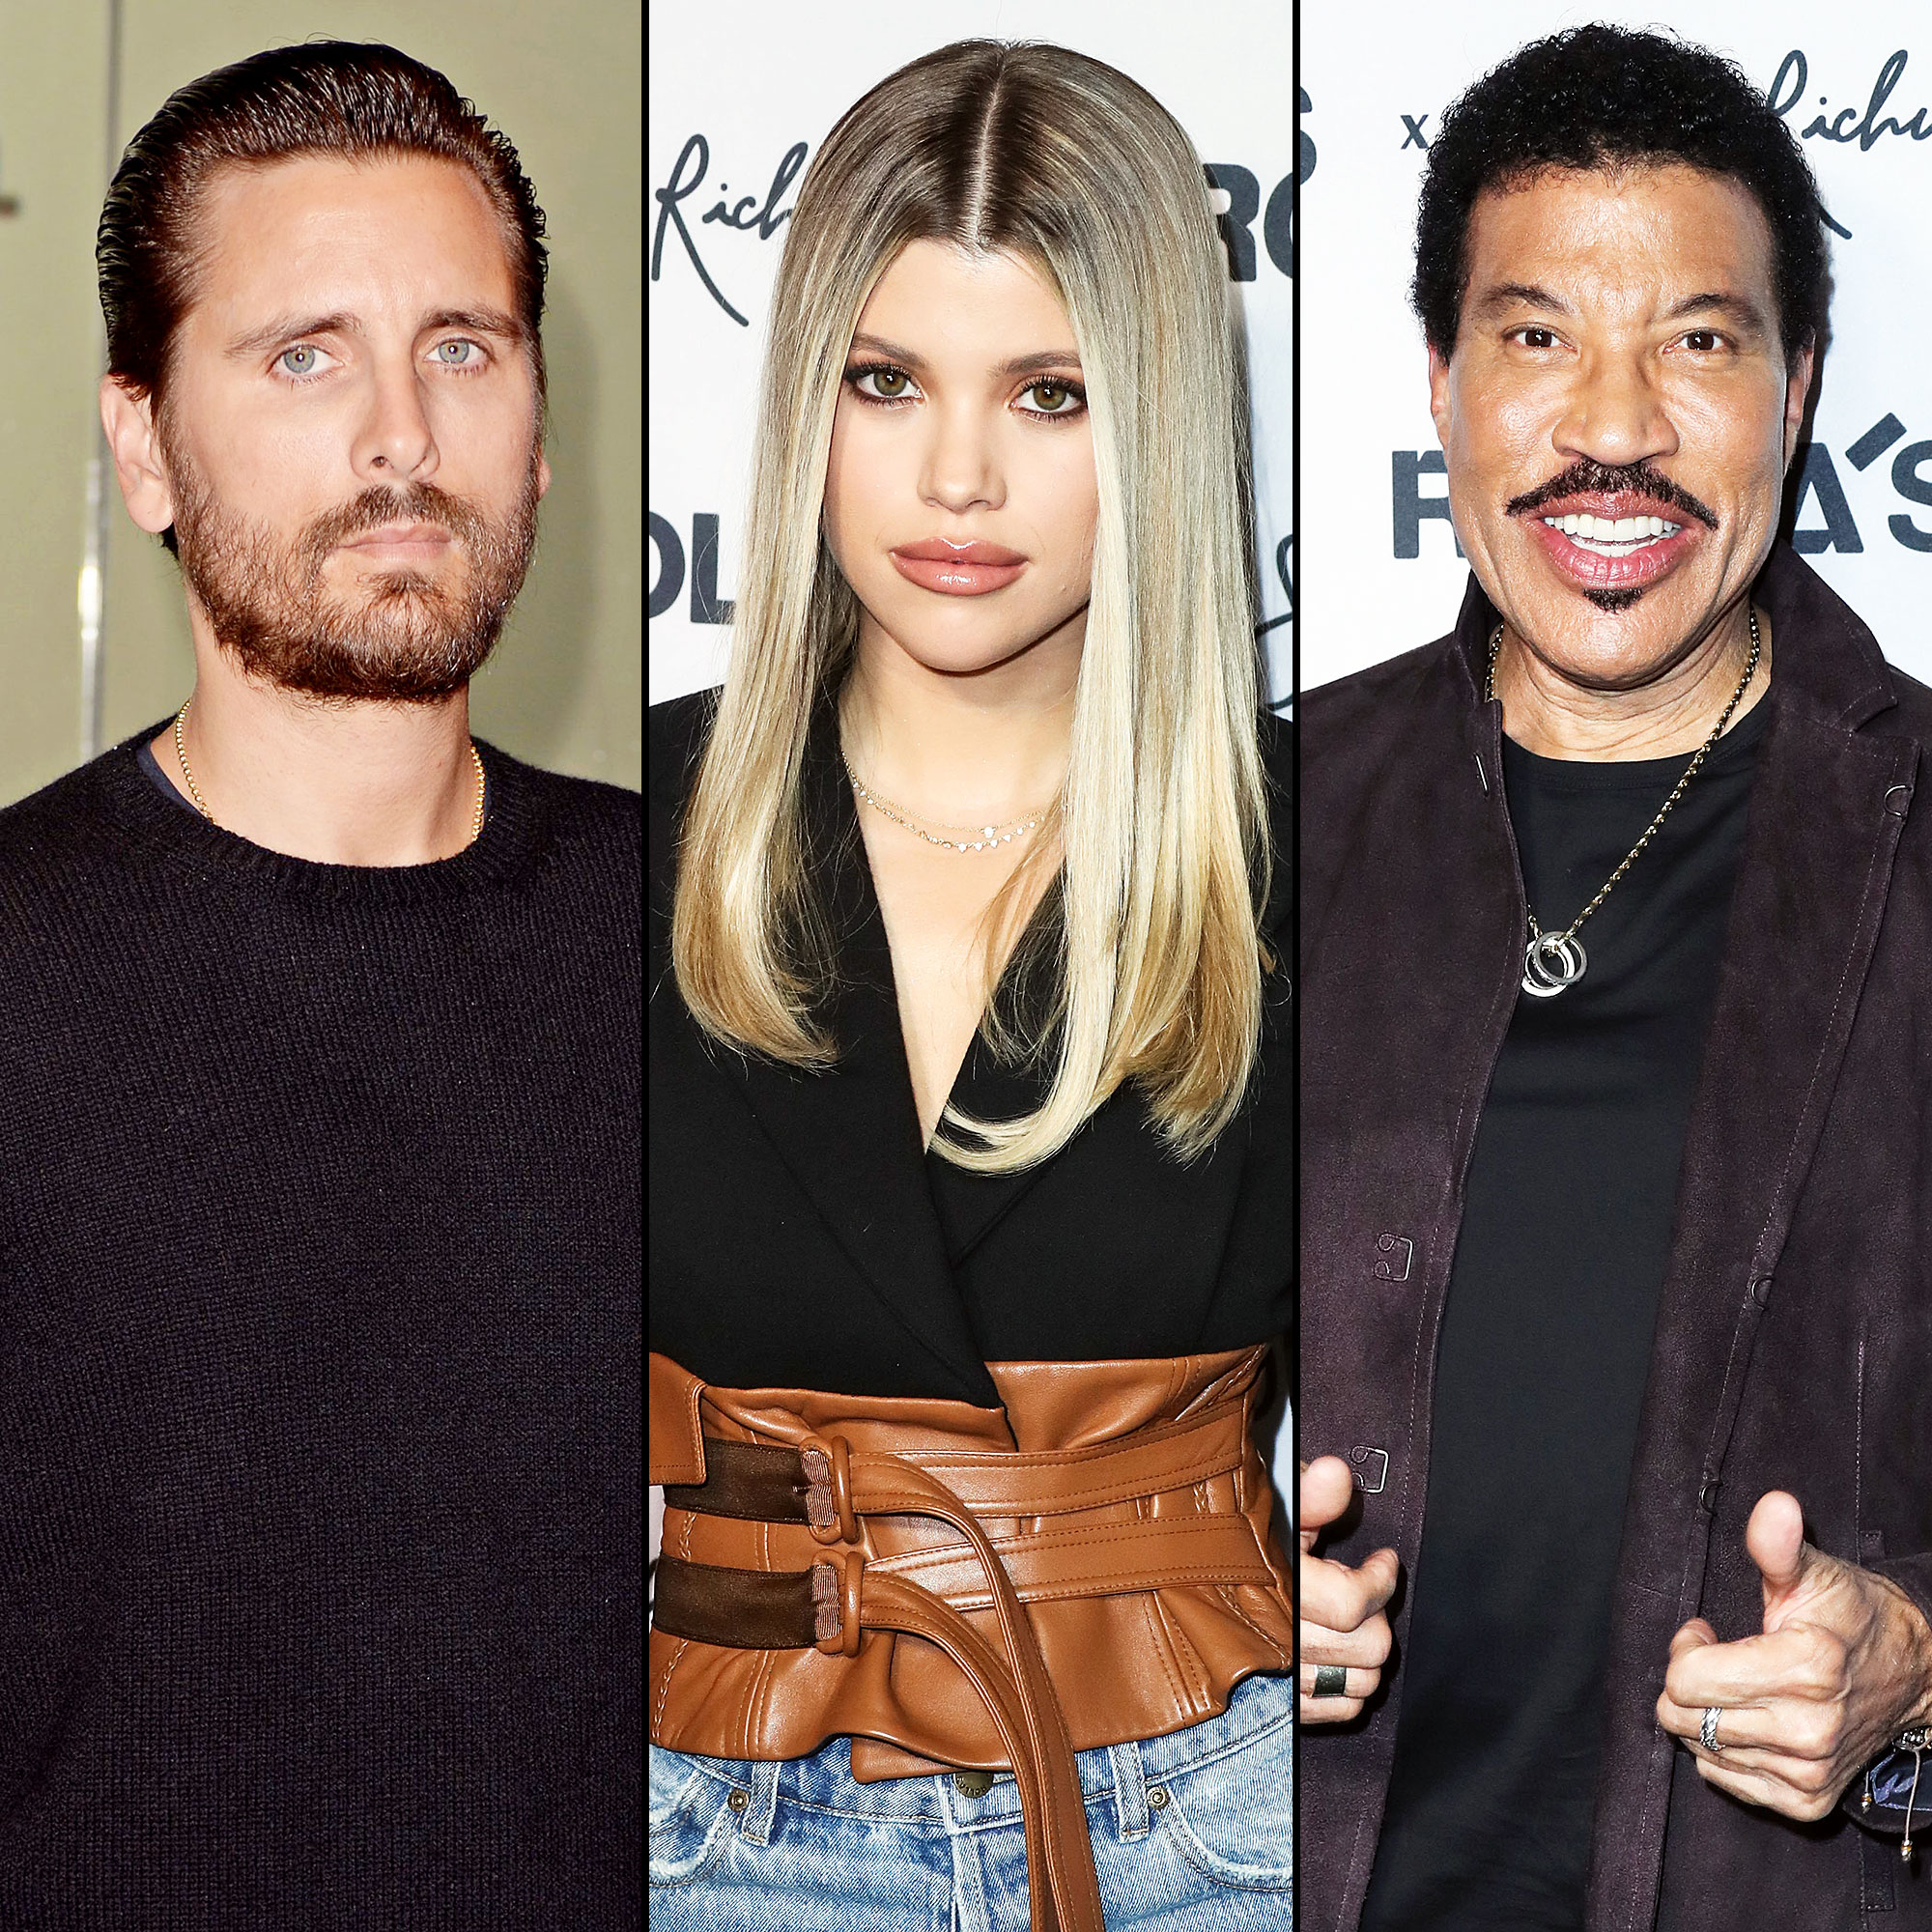 Scott Disick Spotted Getting Cozy With Sofia Richie During Night Out With Lionel Richie at Rolla x Sofia Richie Collection Launch Event